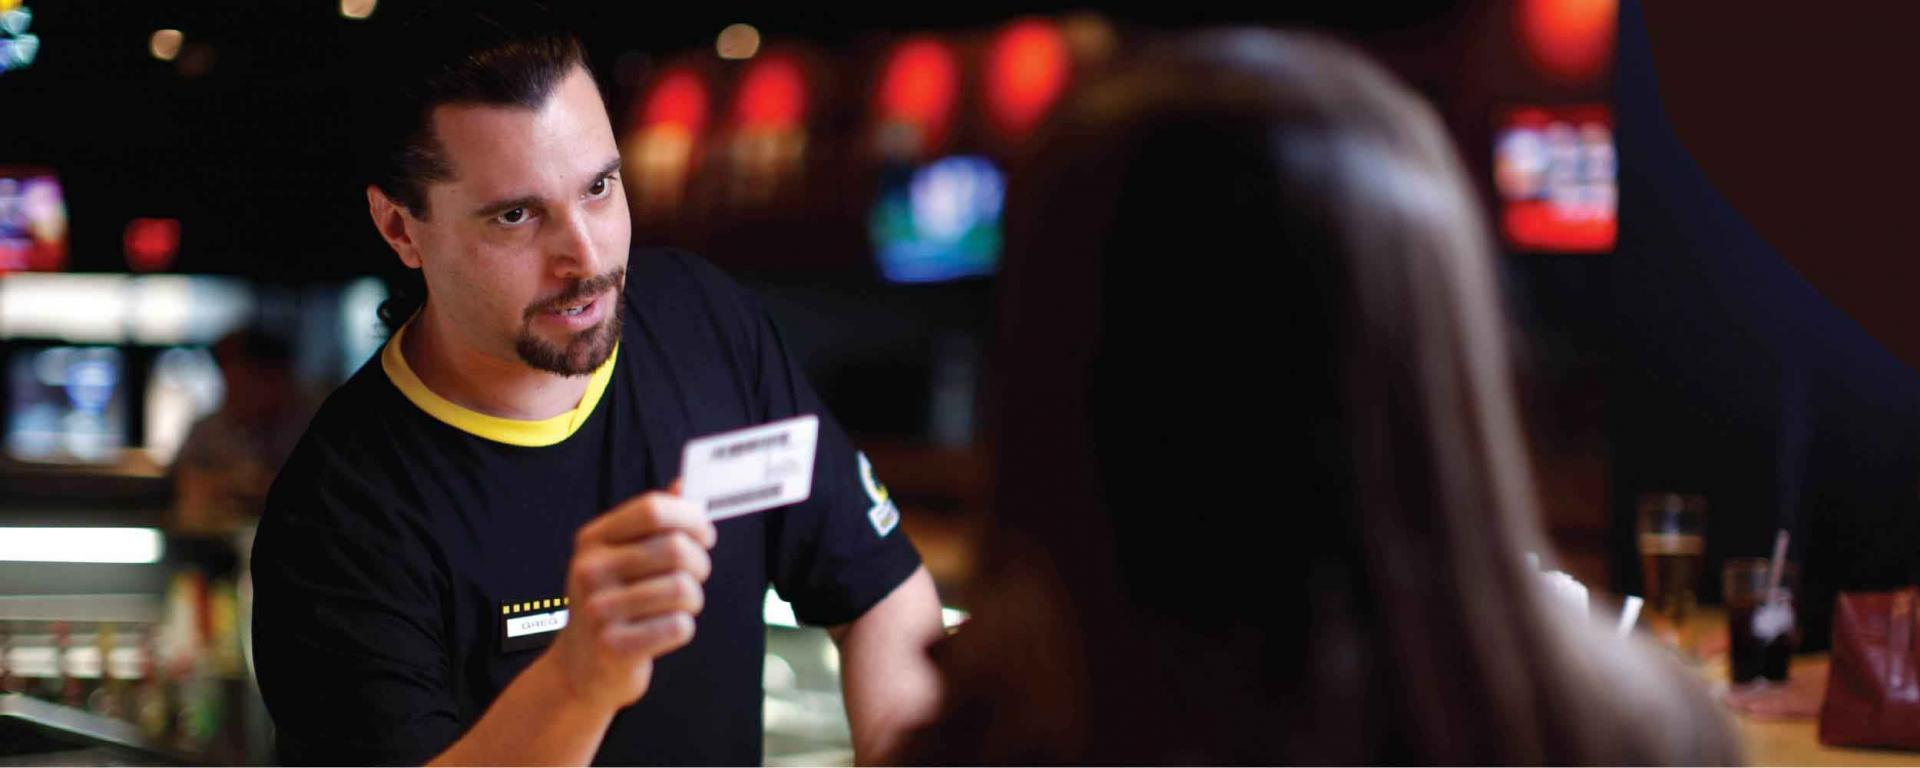 man at bar reviewing ID